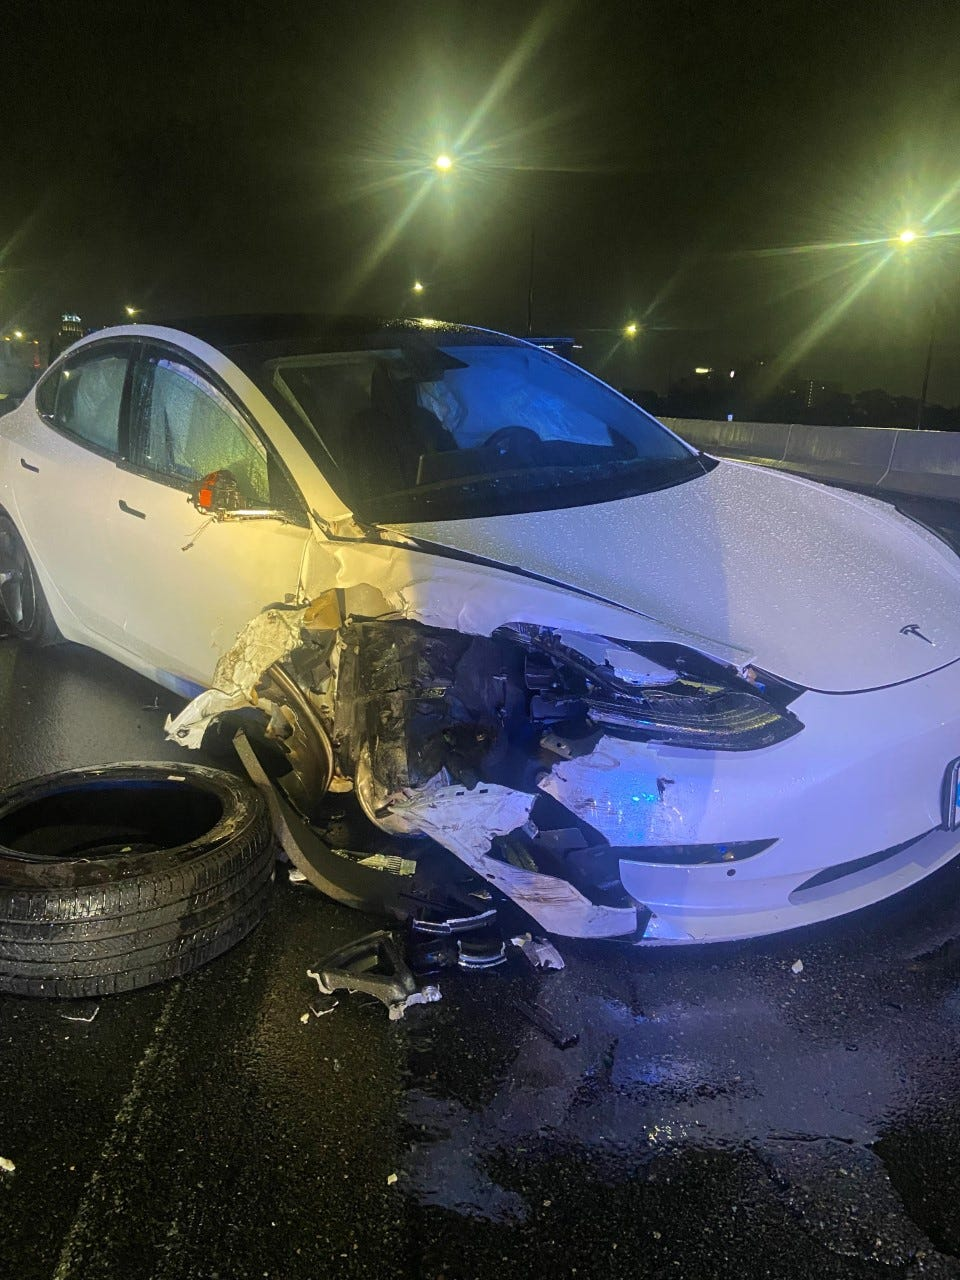 Tesla reportedly on autopilot system slams into police car parked on side of highway